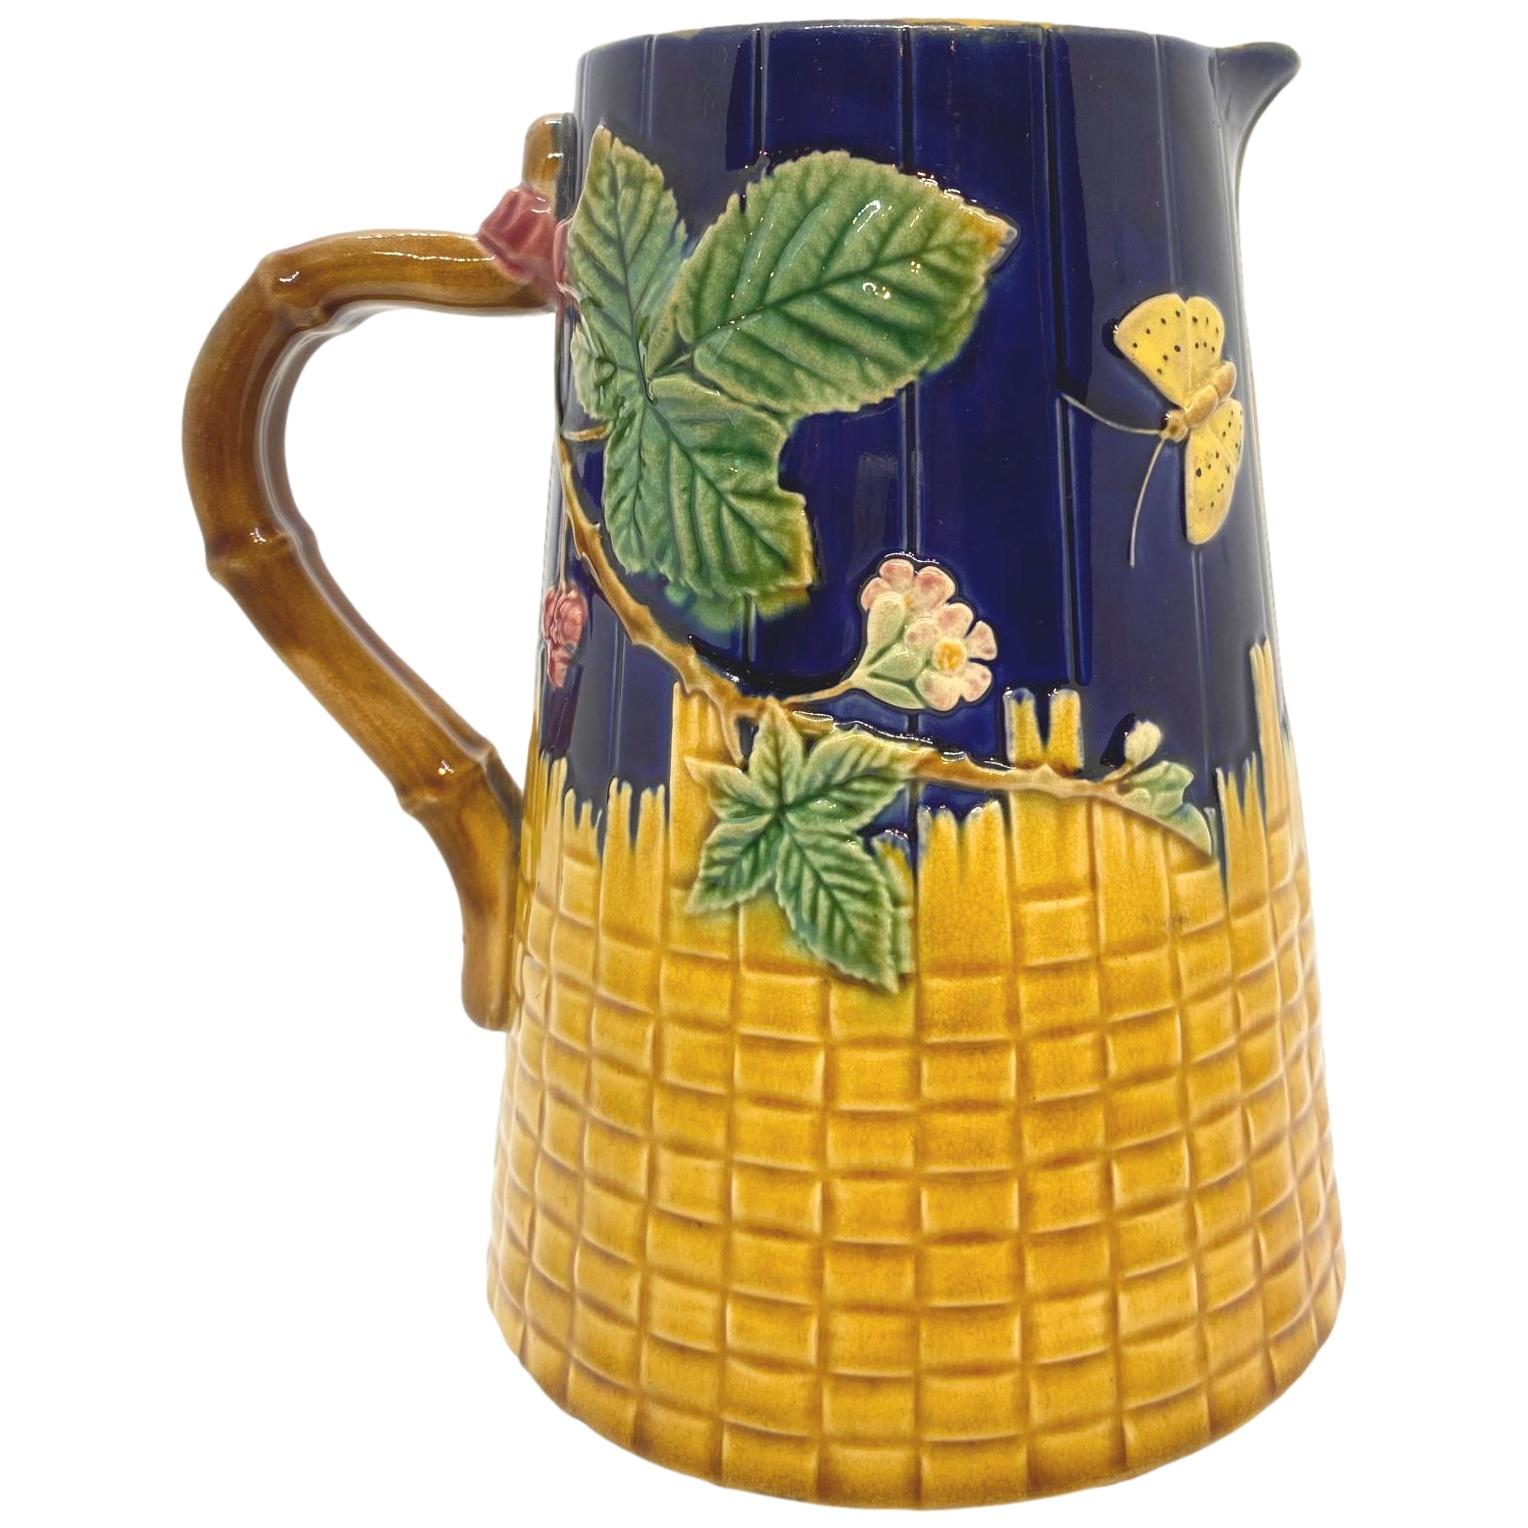 Brown-Westhead Moore Majolica Butterfly and Basketweave Pitcher, Cobalt, c. 1873